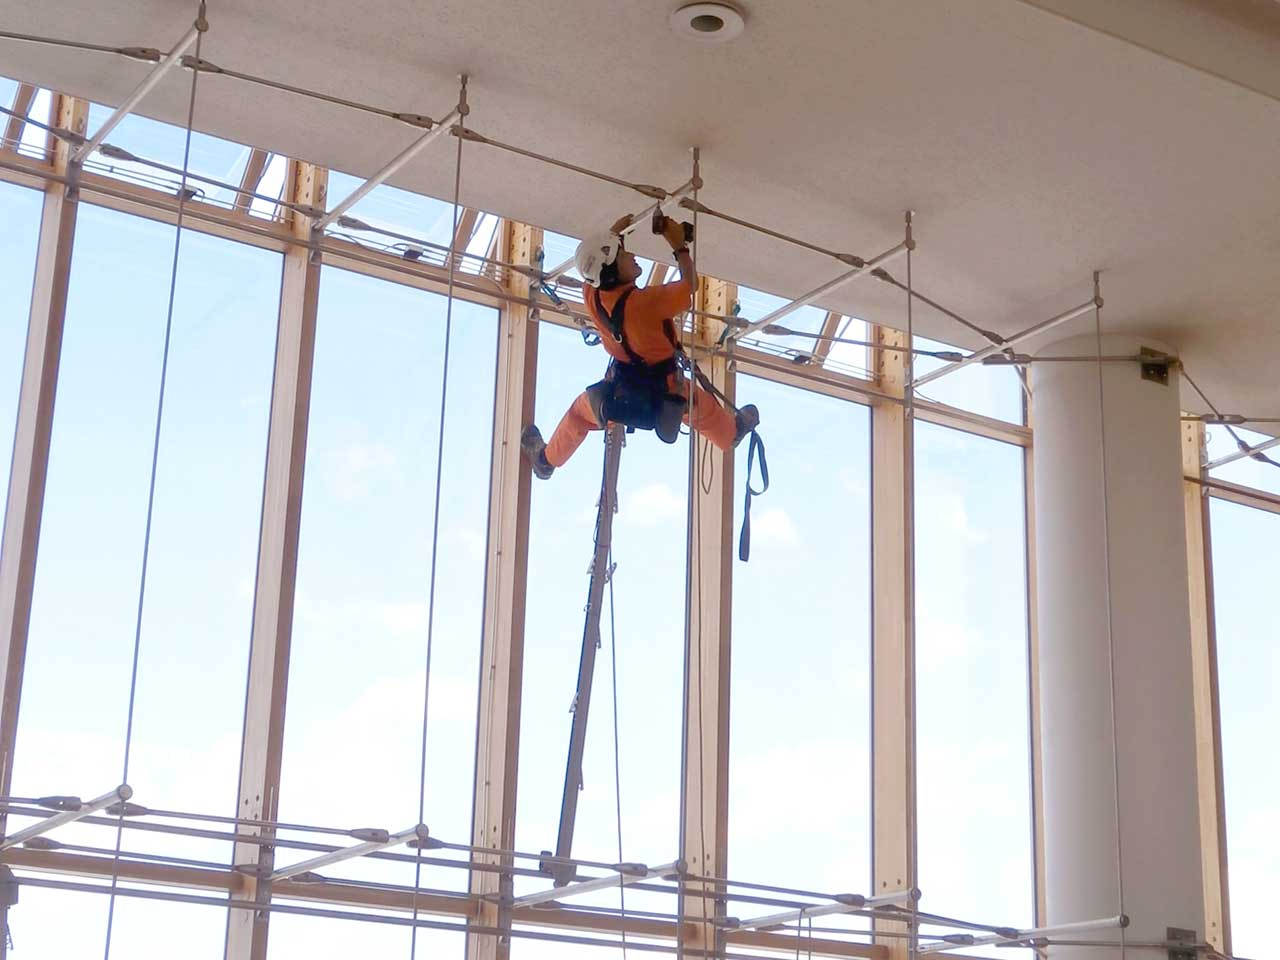 Maintenance of various structures by rope access